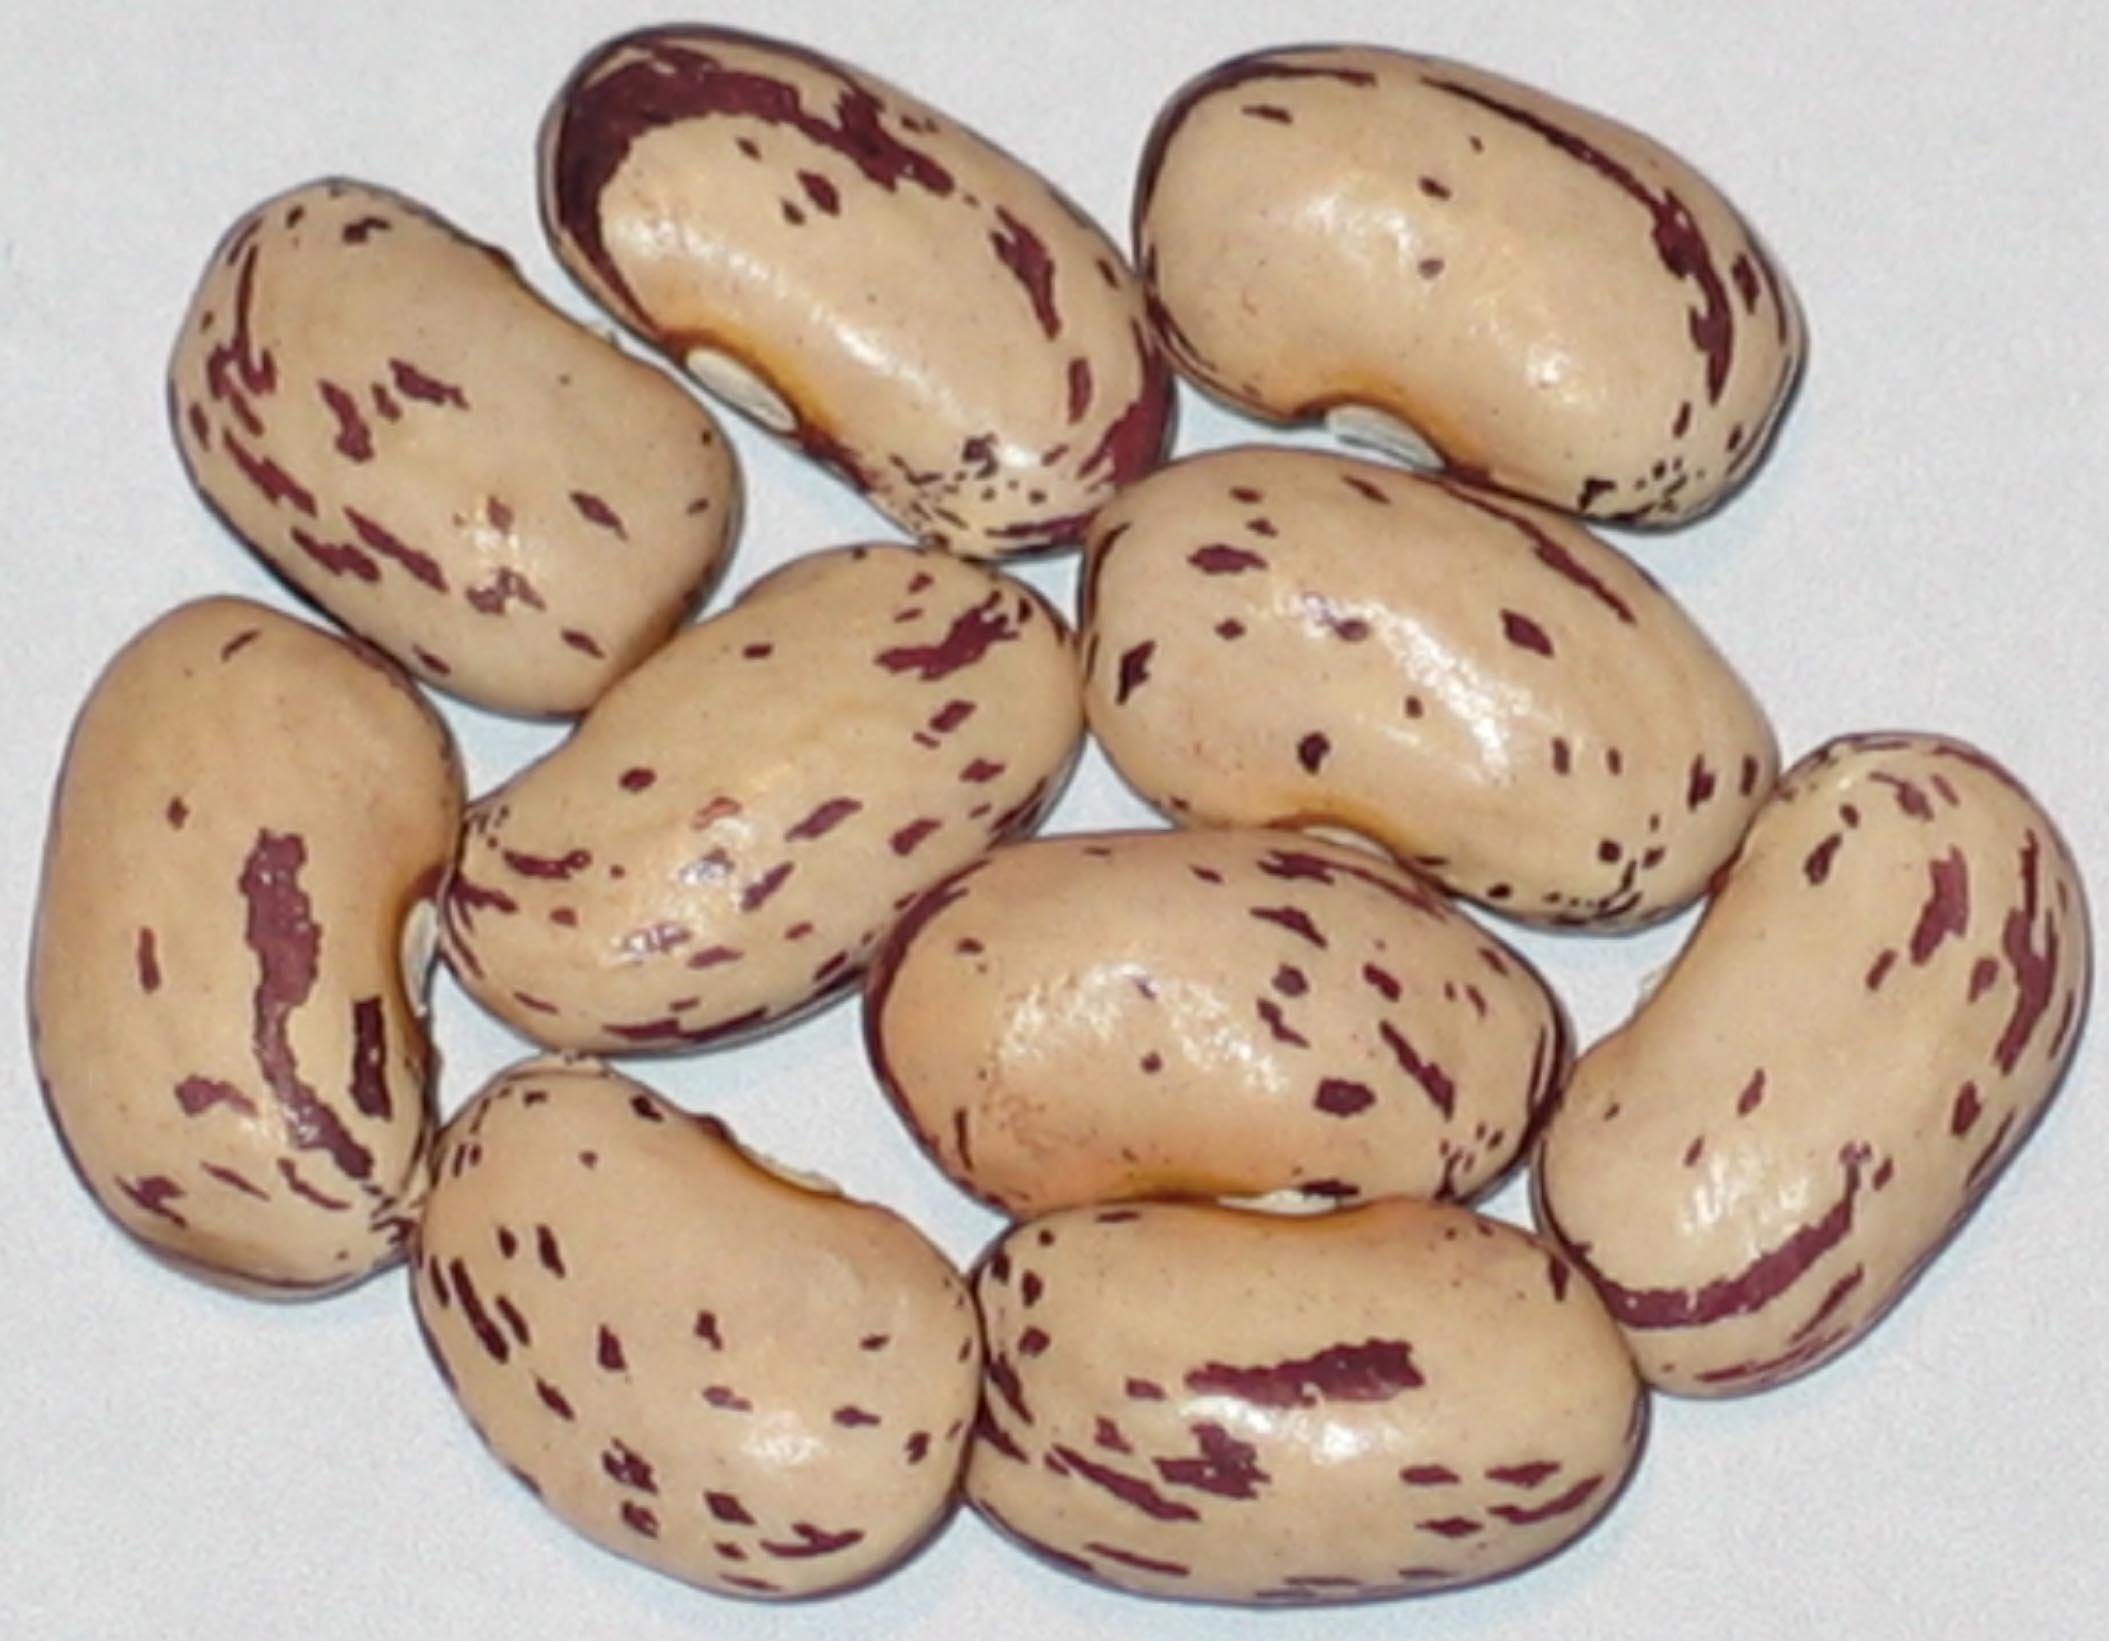 image of Coco Rubico beans